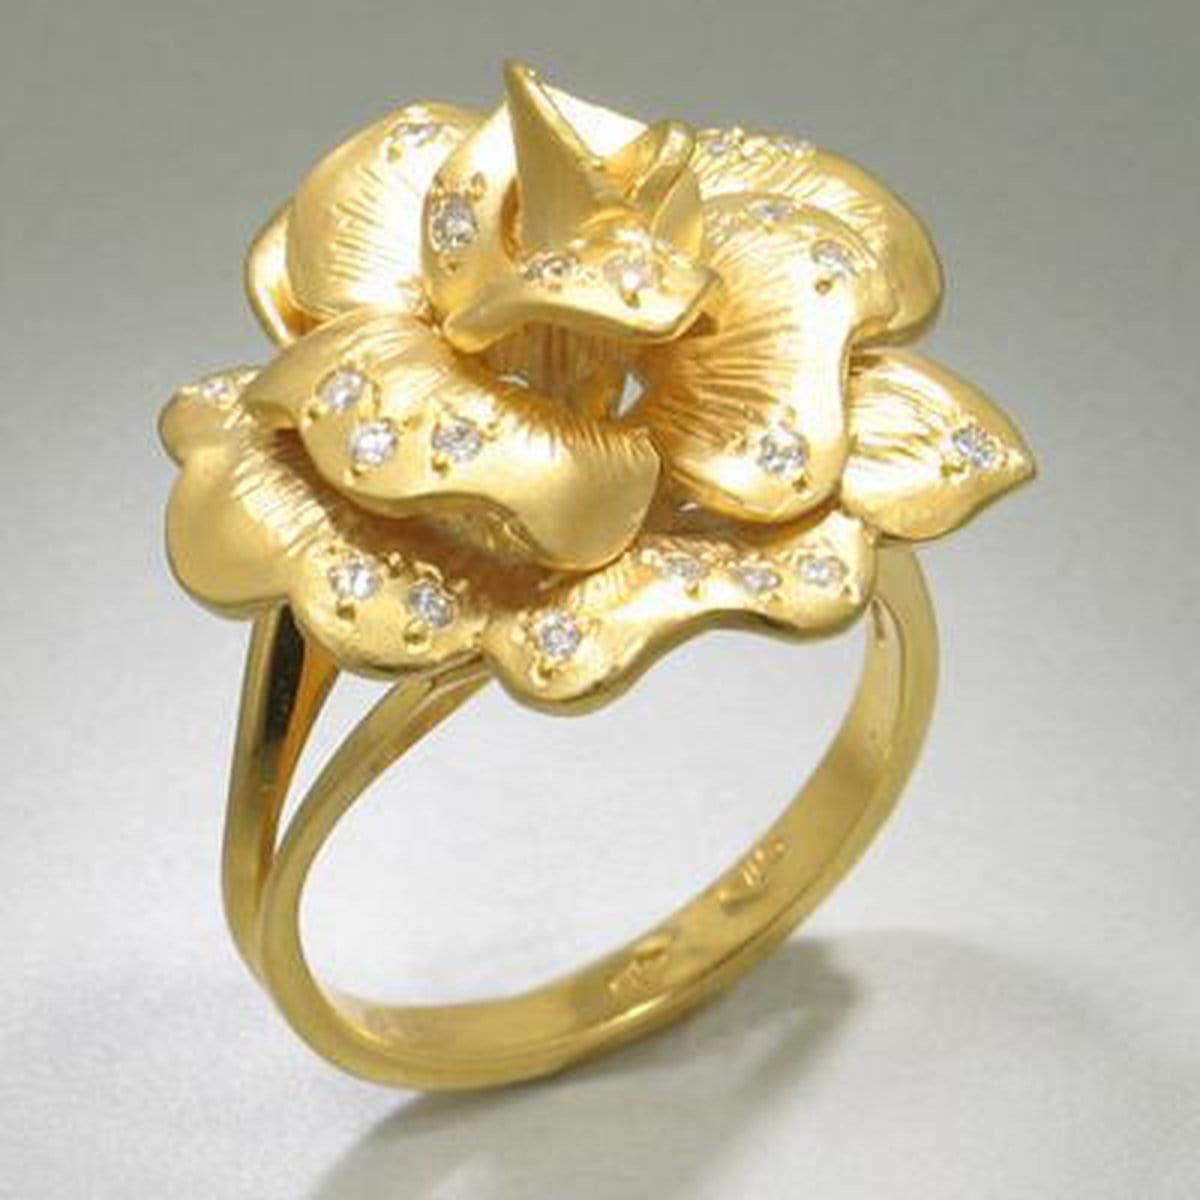 Marika Diamond & 14k Gold Ring - M157-Marika-Renee Taylor Gallery